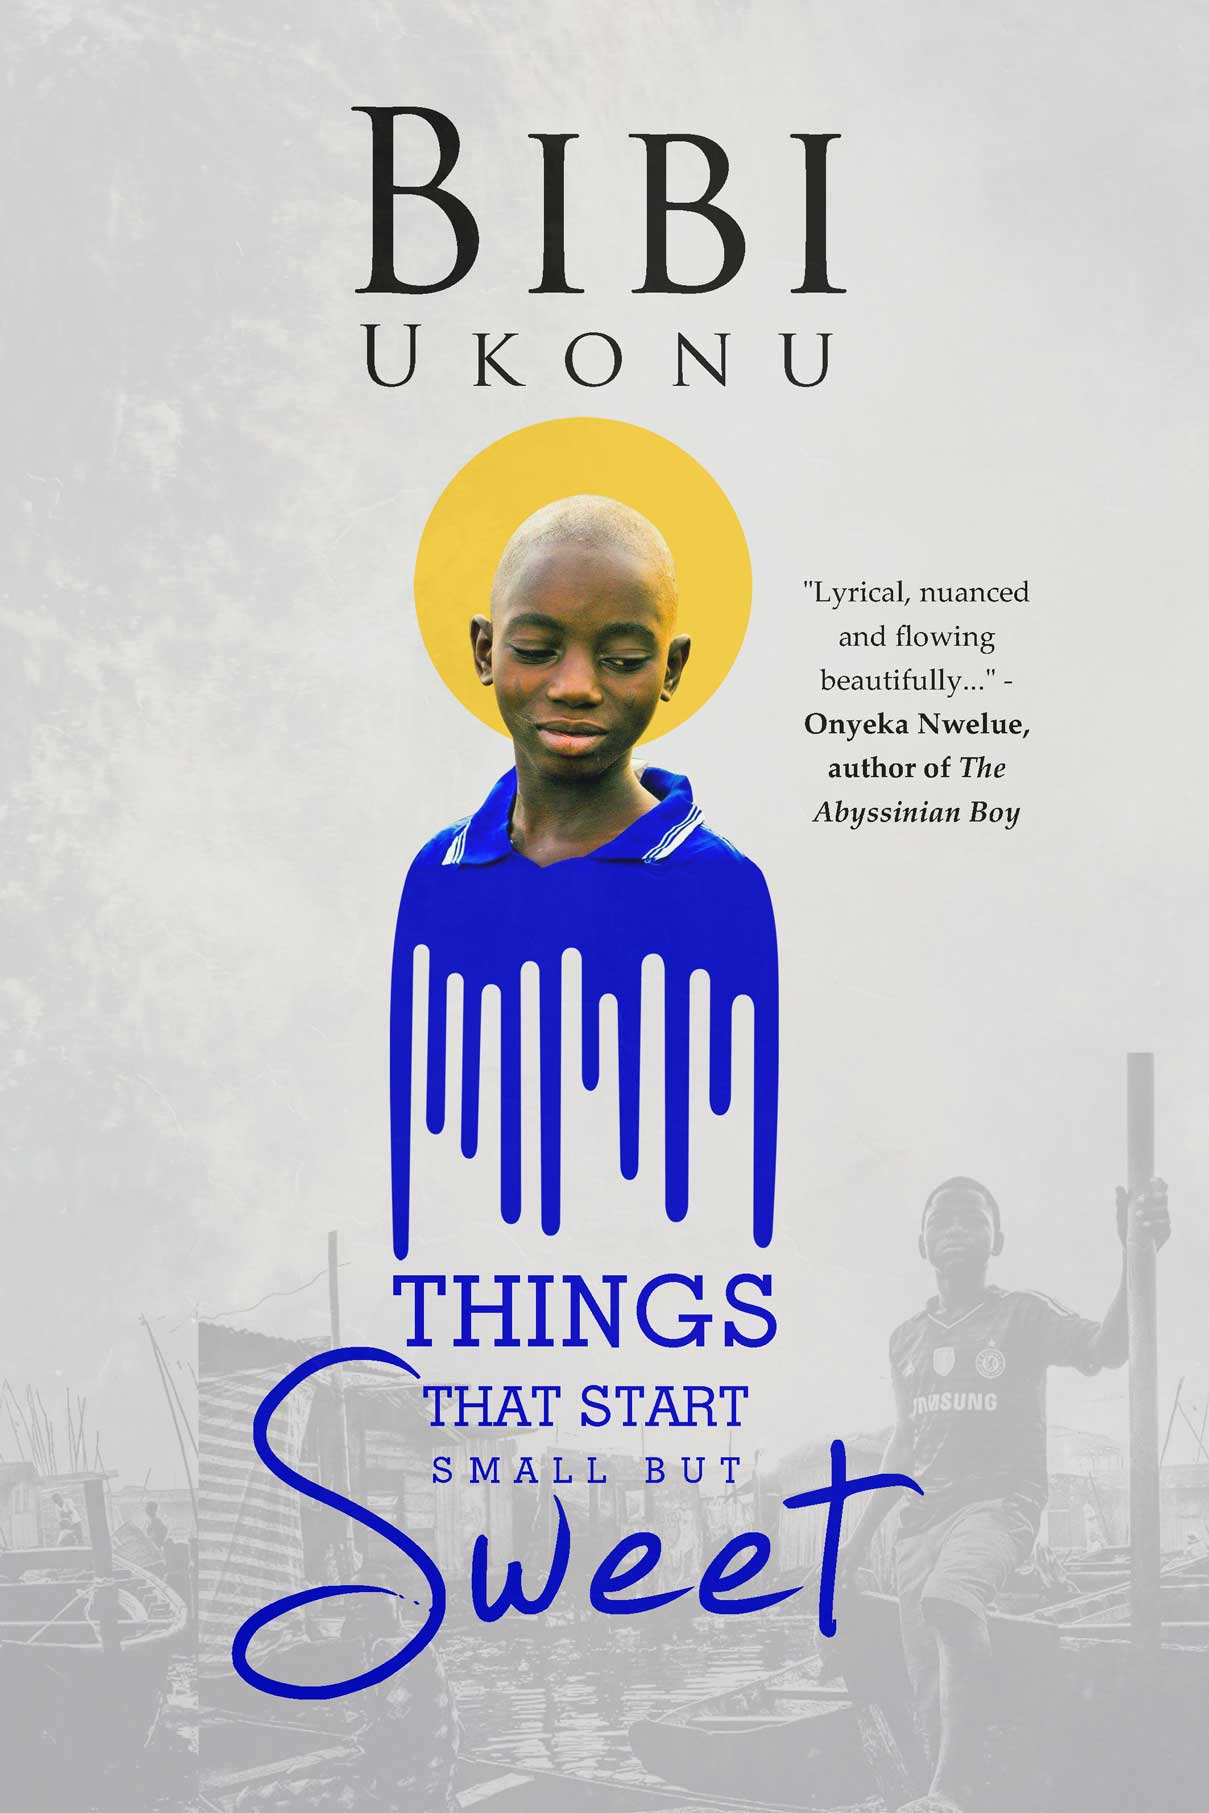 INTERVIEW: Bibi Ukonu Releases a New Book on Social Inclusion of the Lagos Urban Poor.